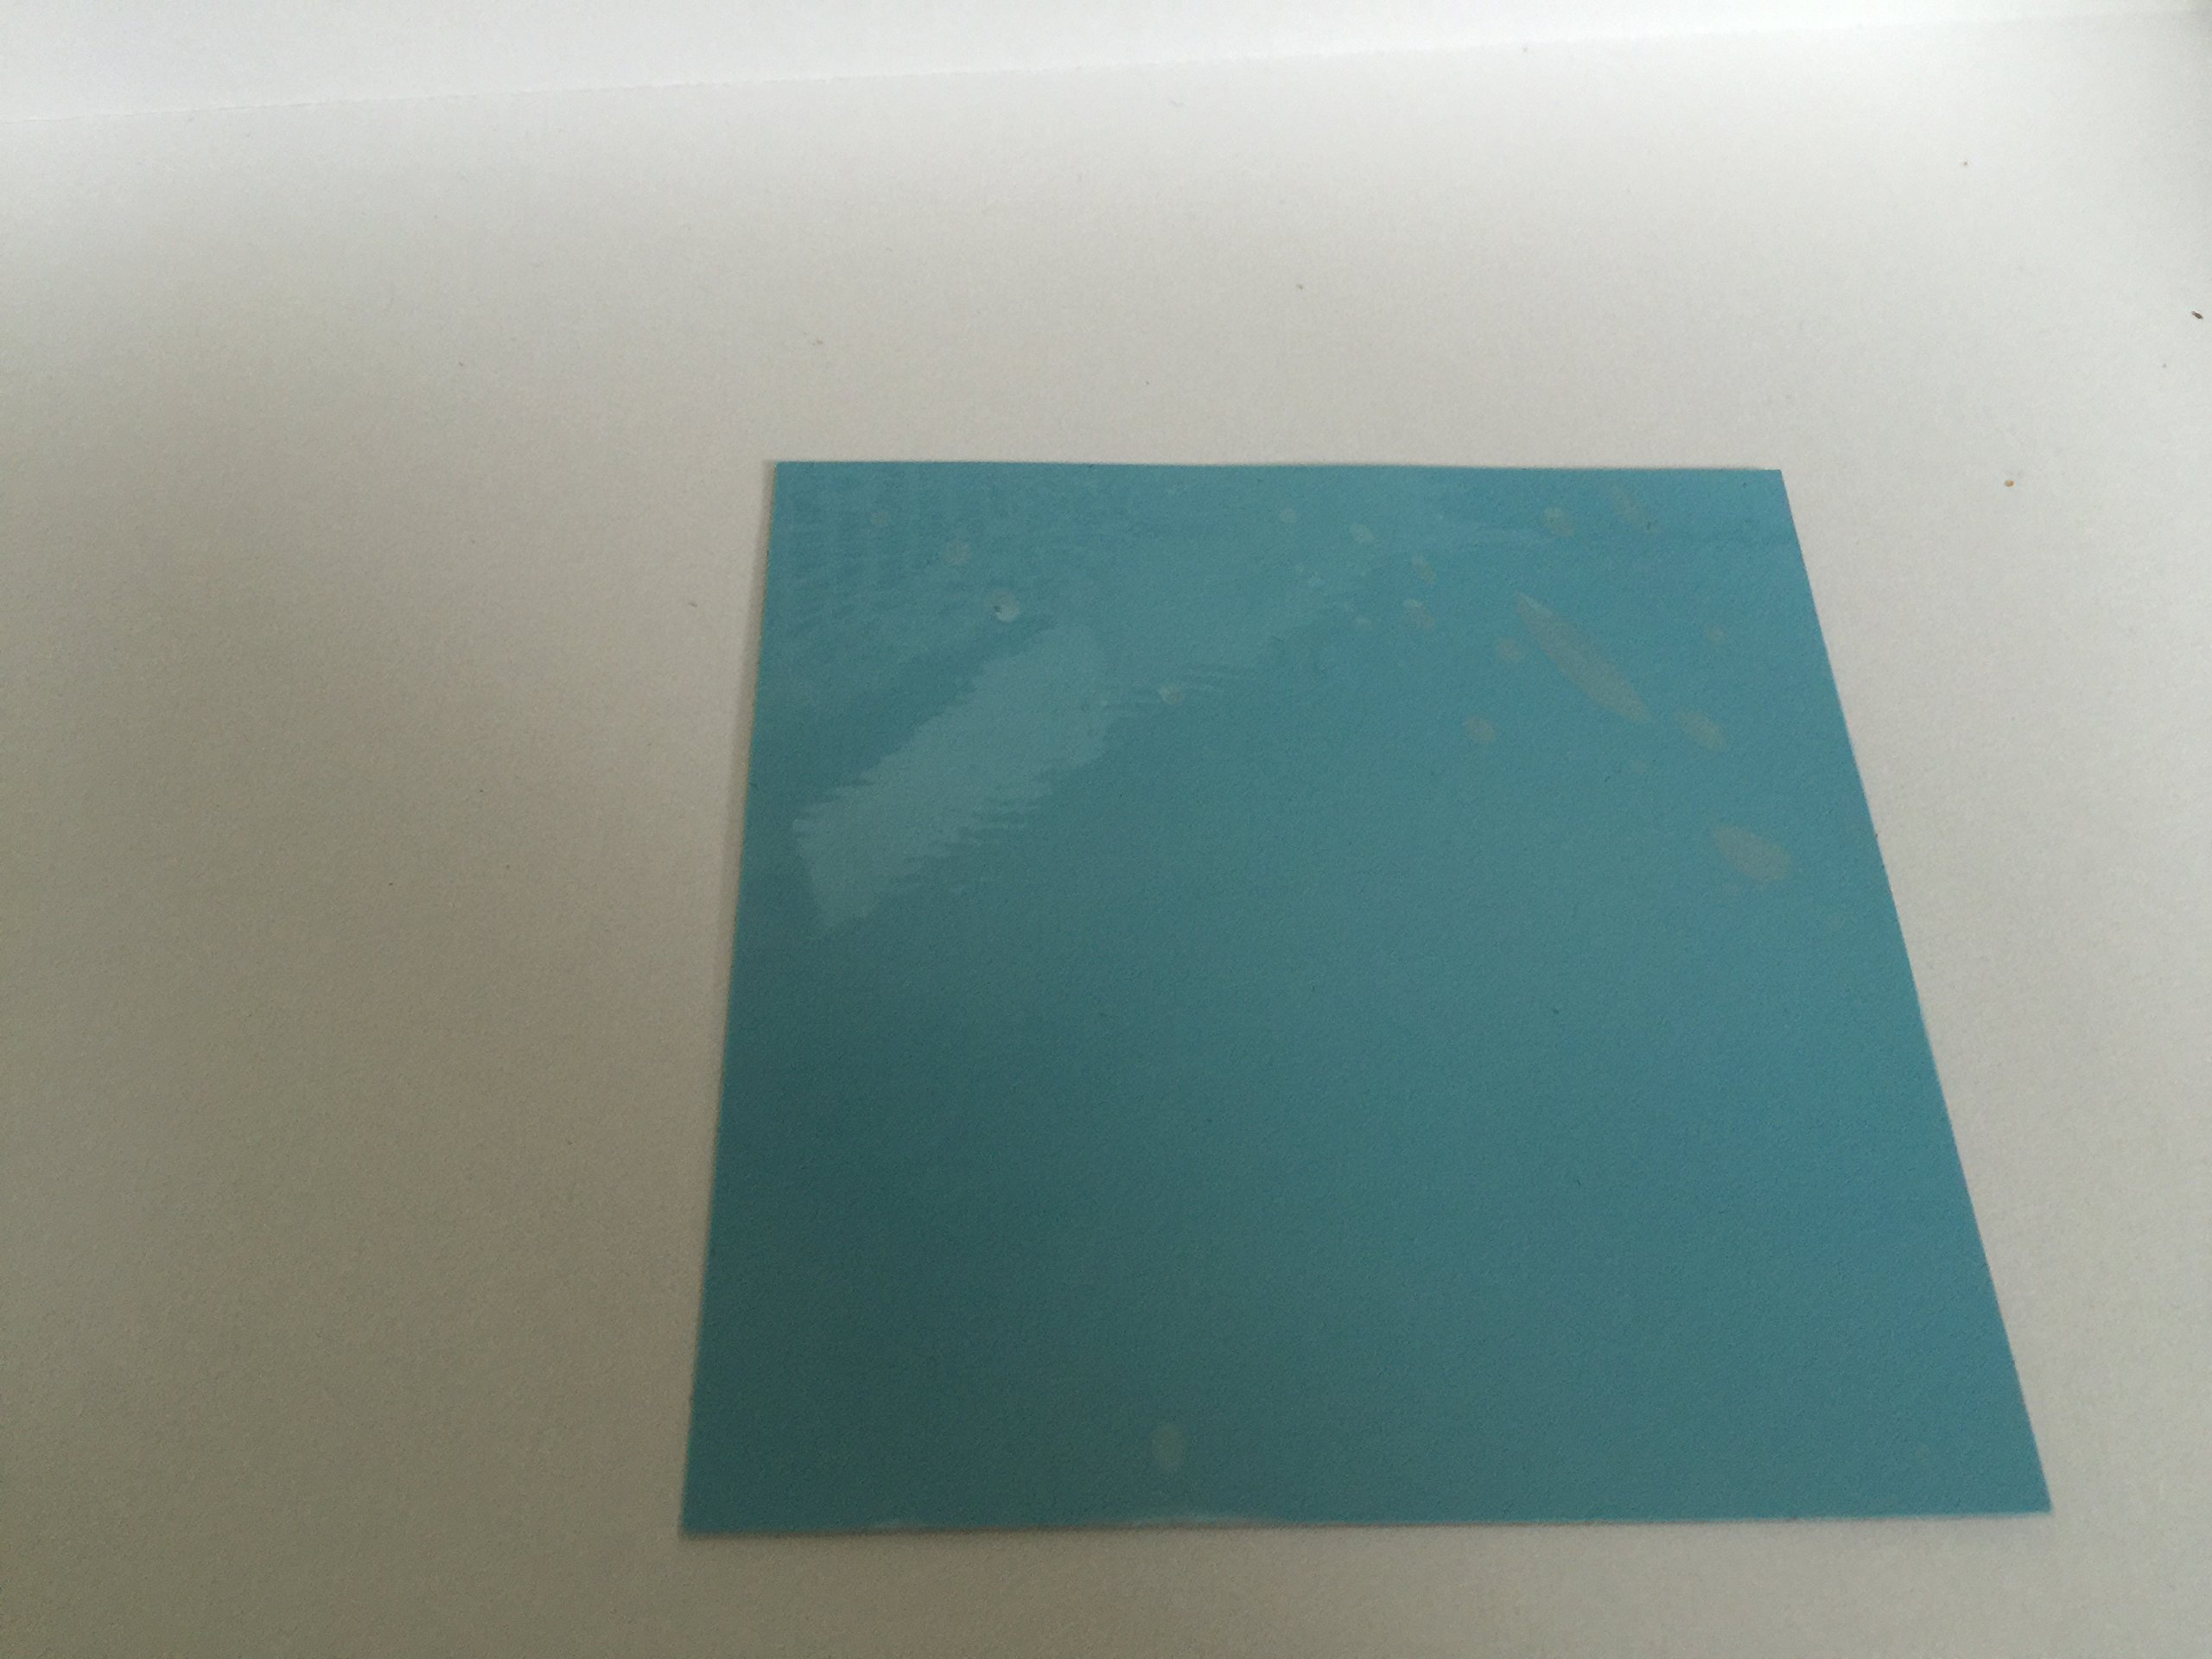 Thermal Conductive Pad (100x 100mm) Thickness Widely Available(0.5mm - 5.0mm) Silicone Filled in Fine Ceramics Powder Thermal Conductivity 3.5W/mk Soft Flexible Adaptable (0.5mm+1.0mm+2.0mm 3pcs Set) by TAIHEIYO (Image #2)